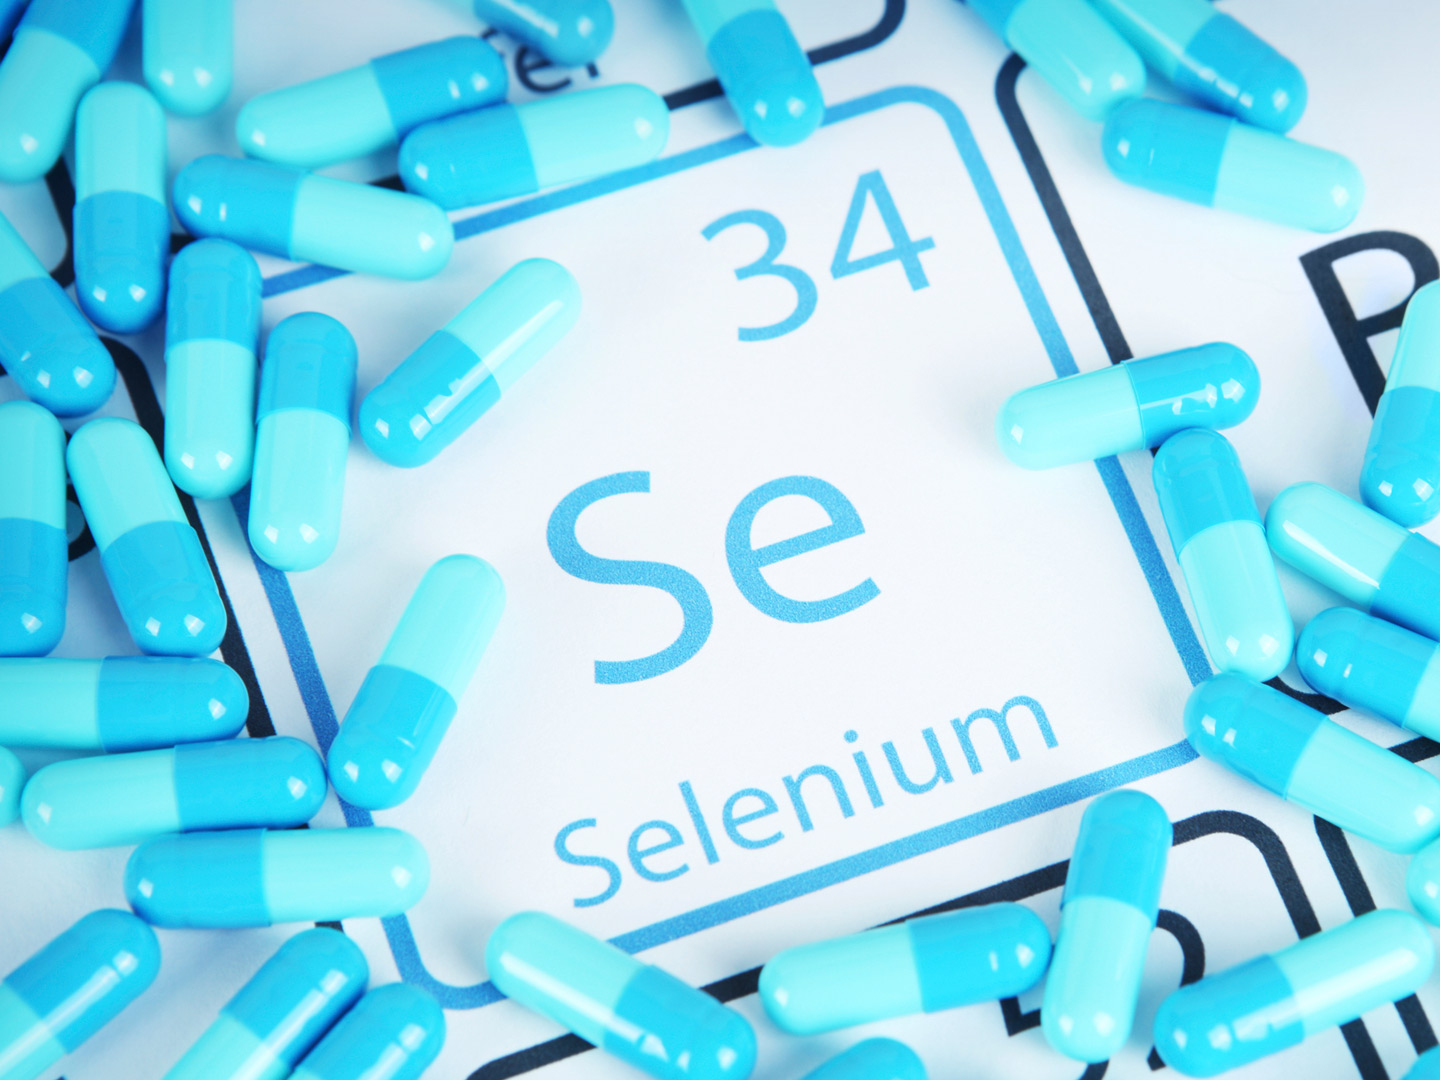 Does Too Little Selenium Cause Cancer? - DrWeil.com